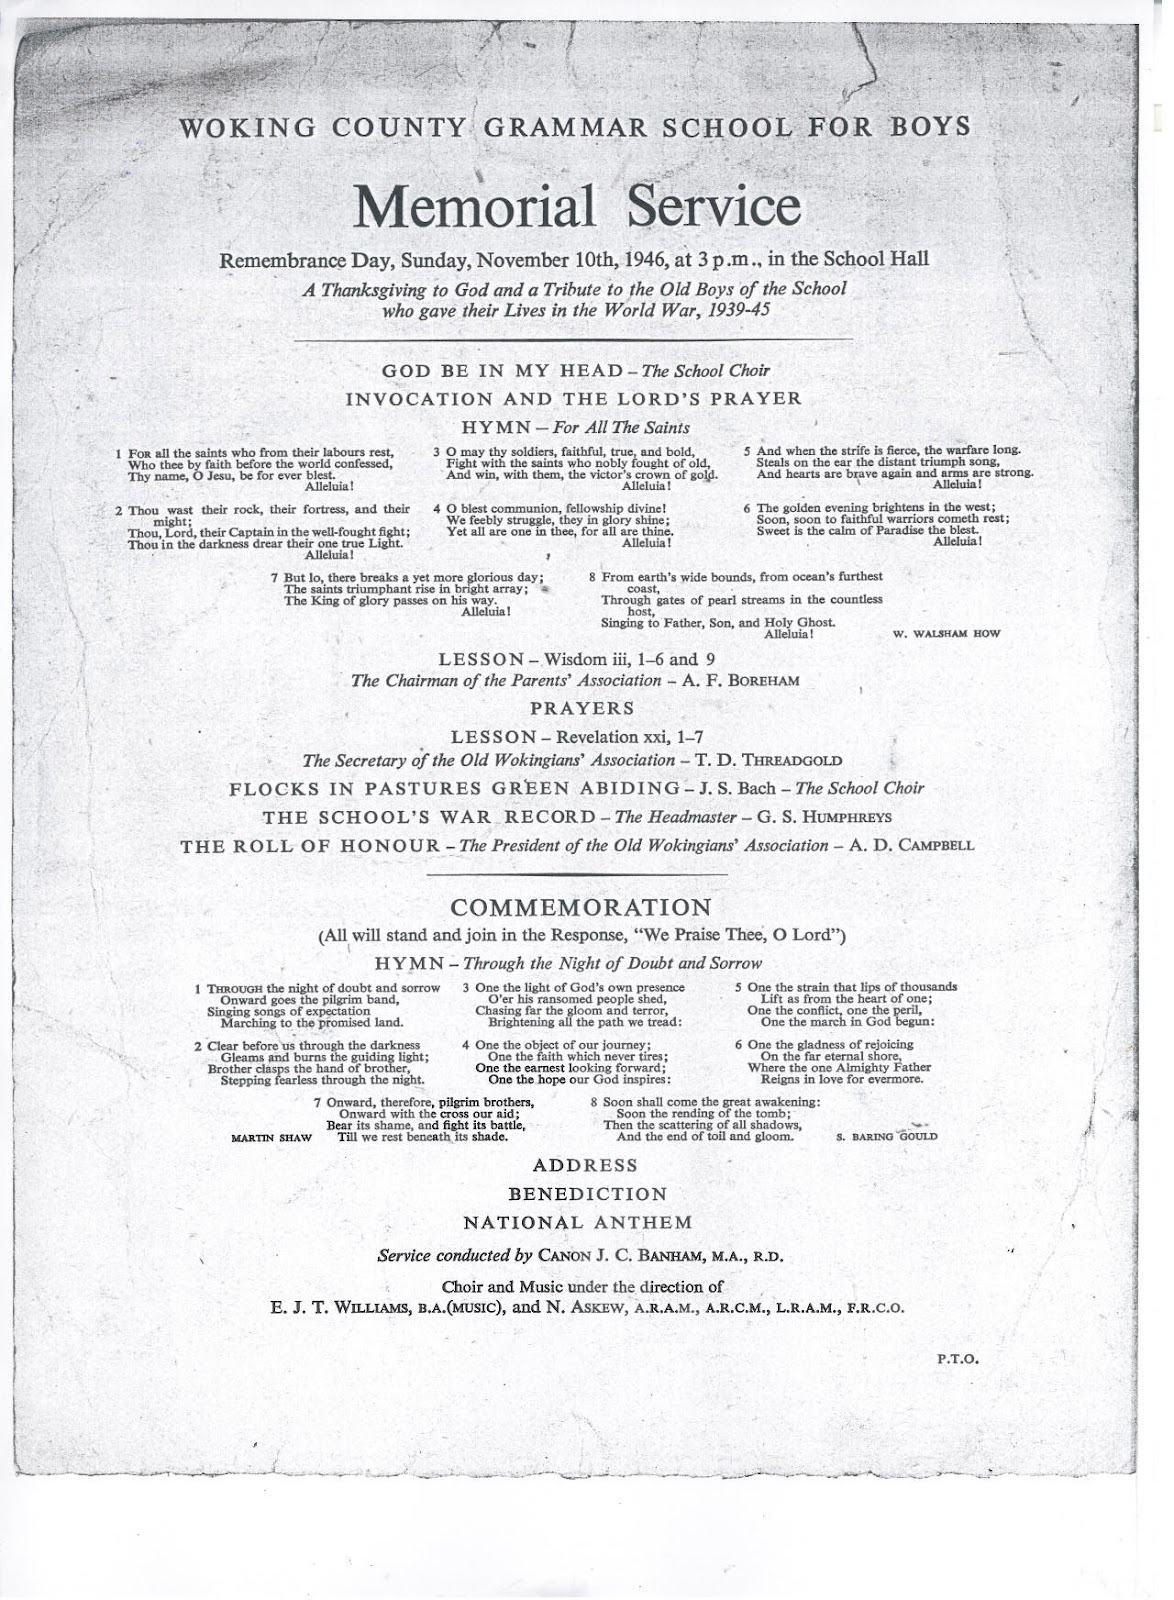 Order Of Memorial Service 1946 Investment Banking Blog Articles